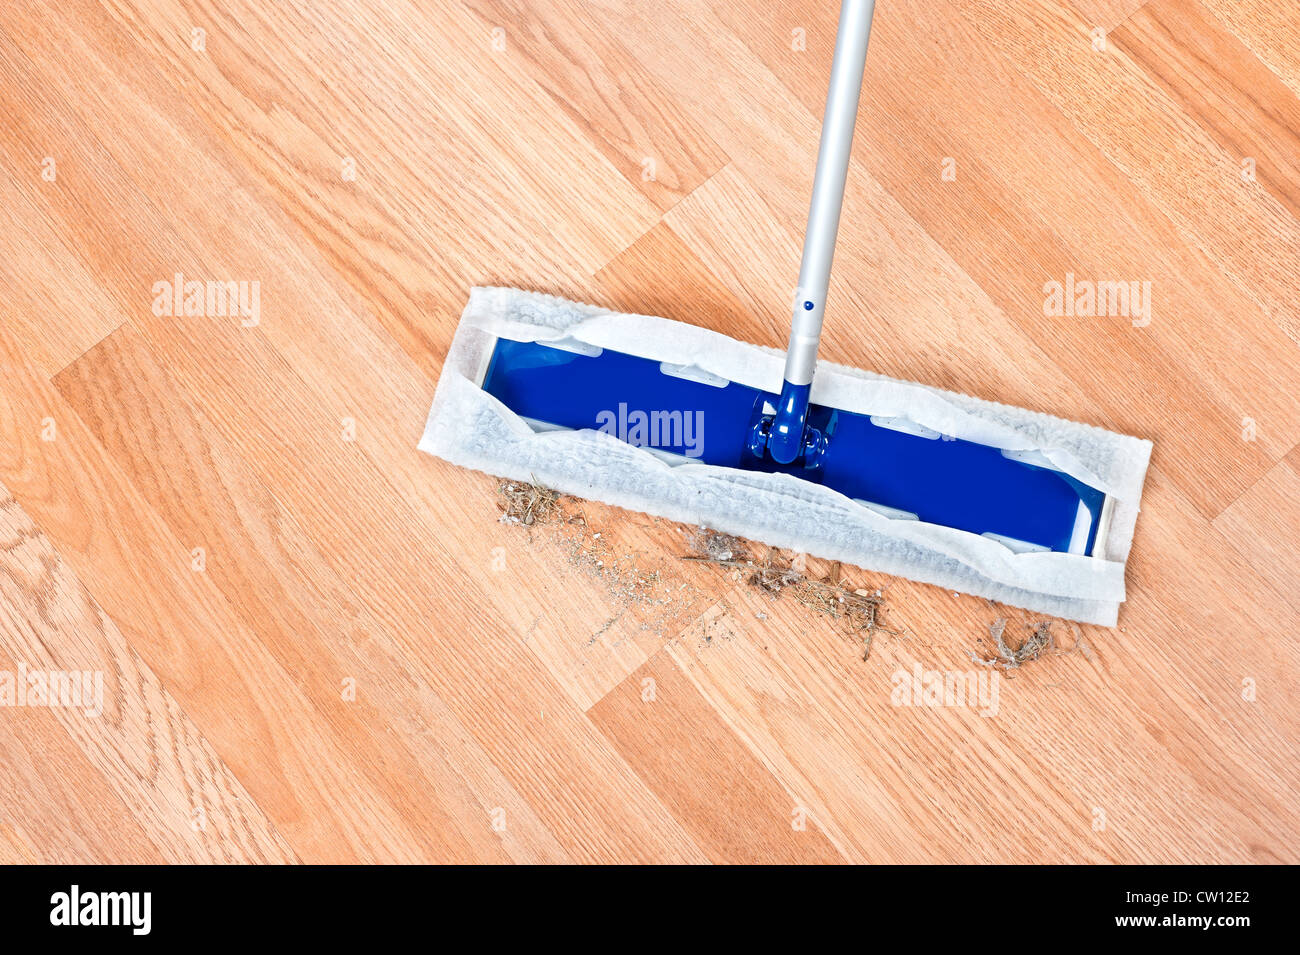 Image of a modern floor dusting mop being used to clean hair and dirt on a wooden laminent floor. - Stock Image